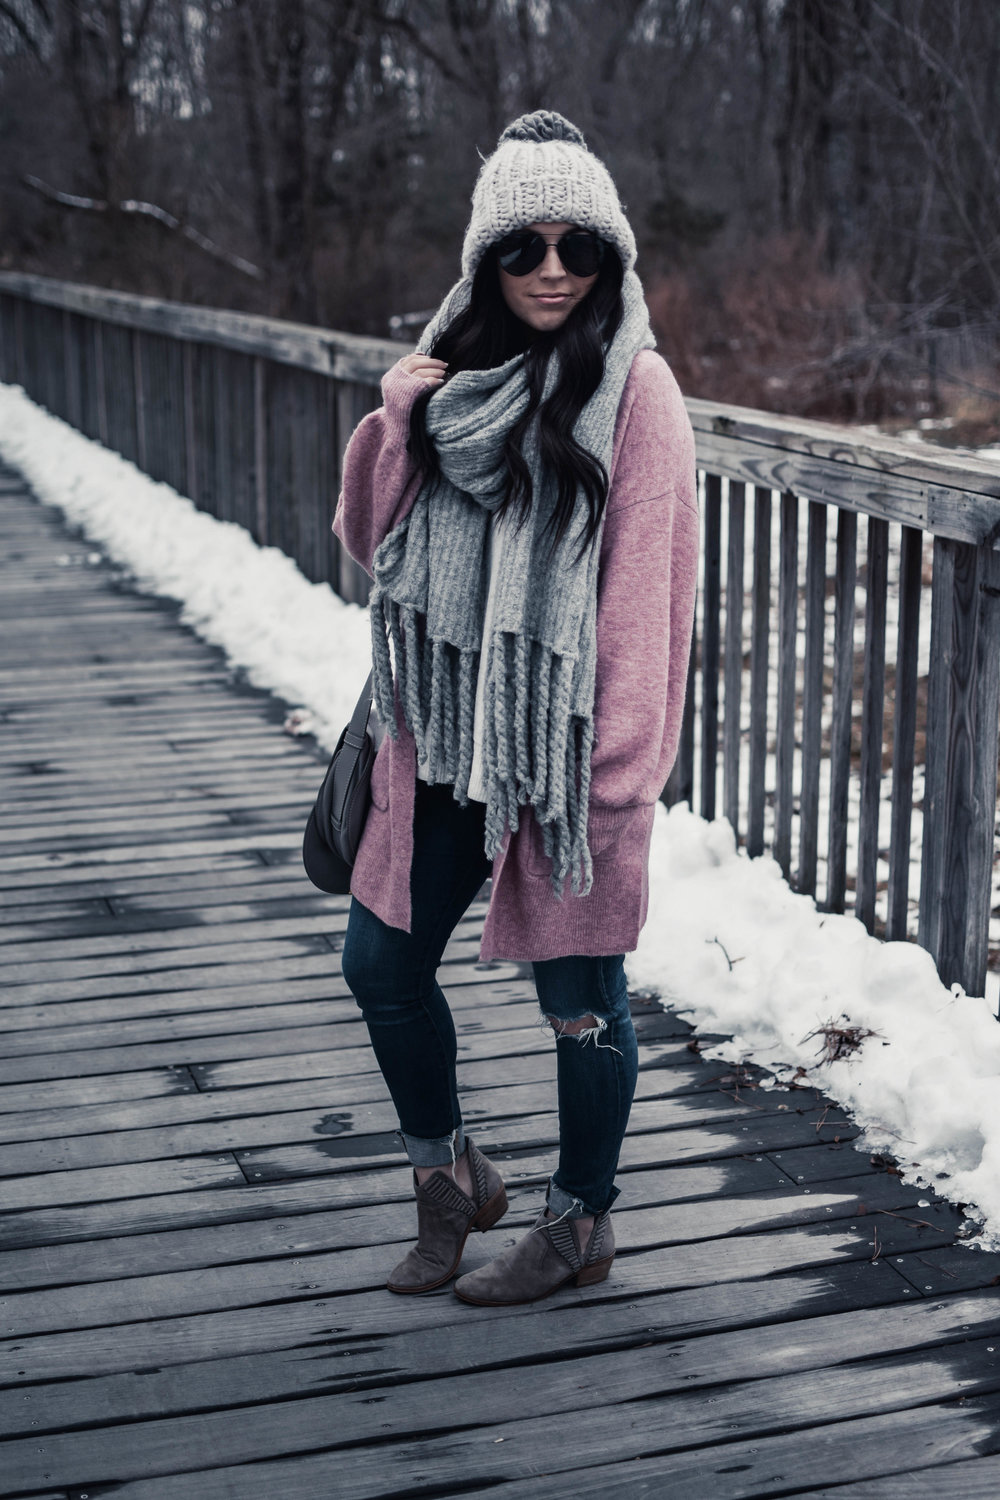 cozy winter outfit | pine barren beauty | madewell cardigan, ag jeans, free people scarf, winter outfit idea, cozy outfit idea, winter outfit inspiration